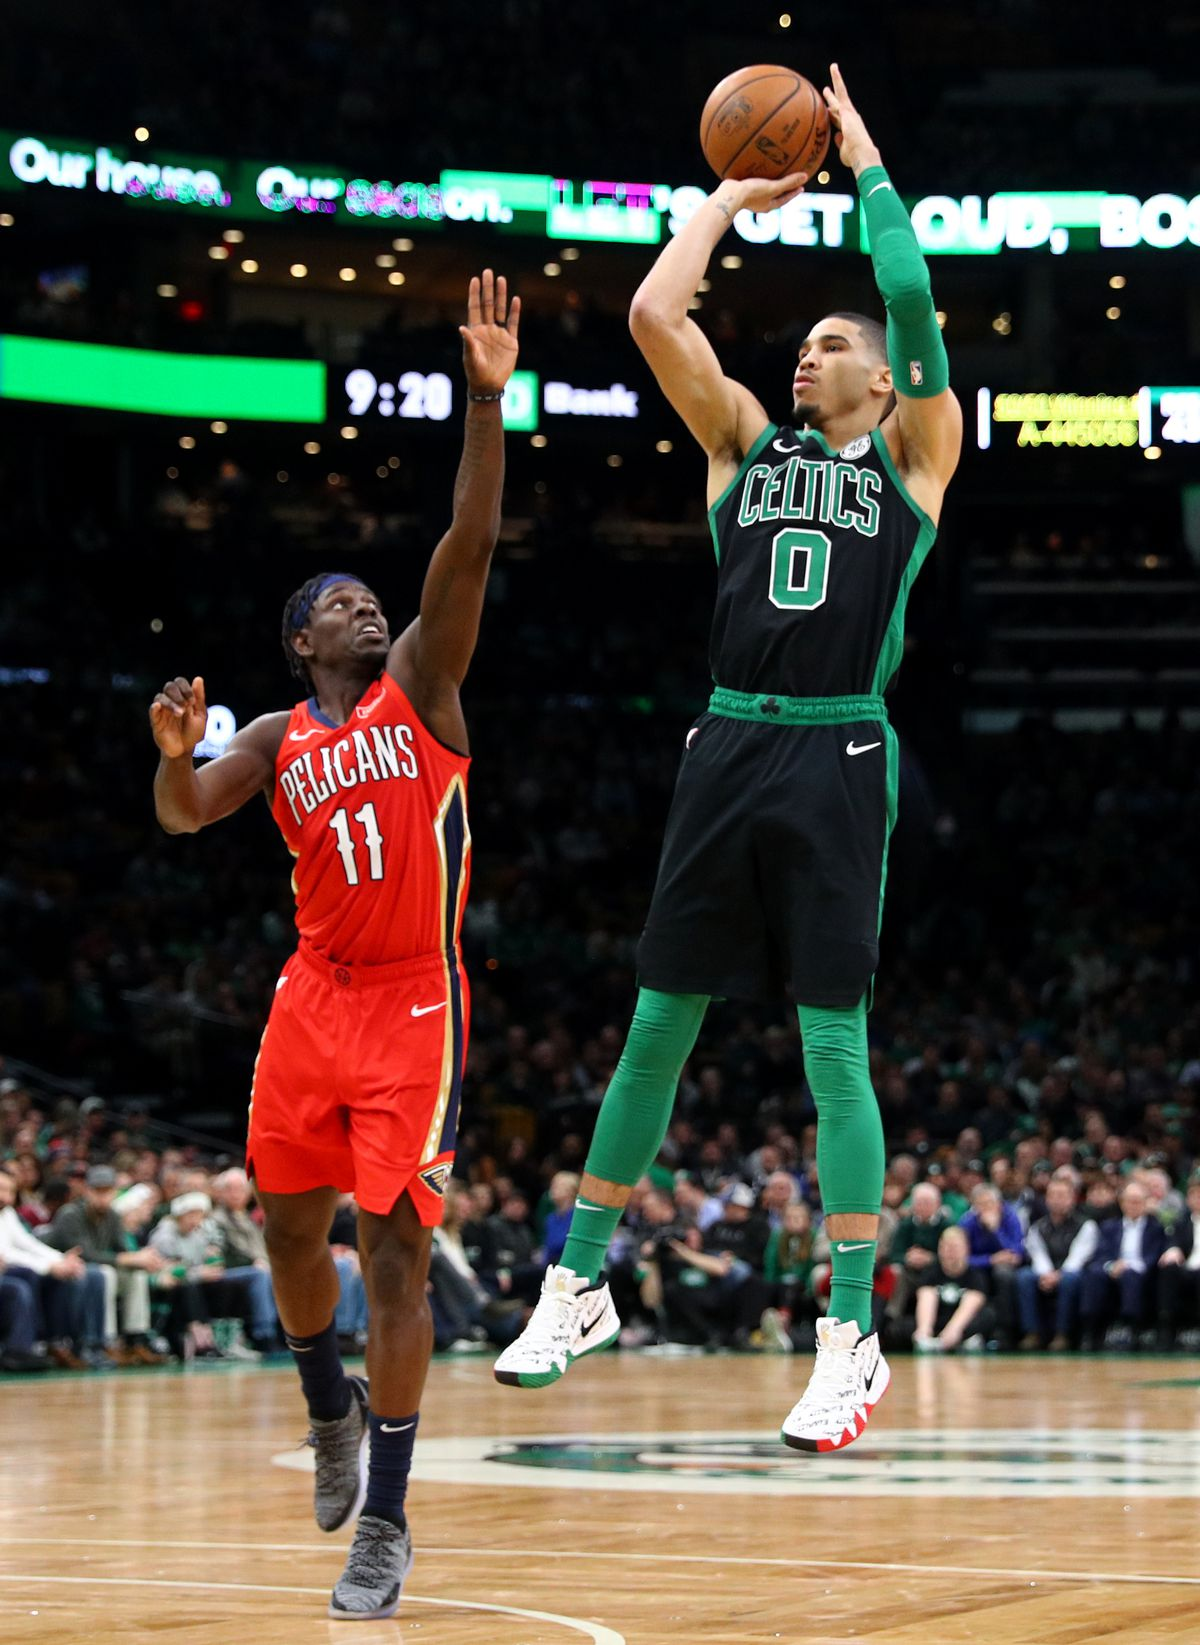 Jayson Tatum may fancy becoming face of New Orleans Pelicans and in one fell swoop cure city full of hopeless romantics